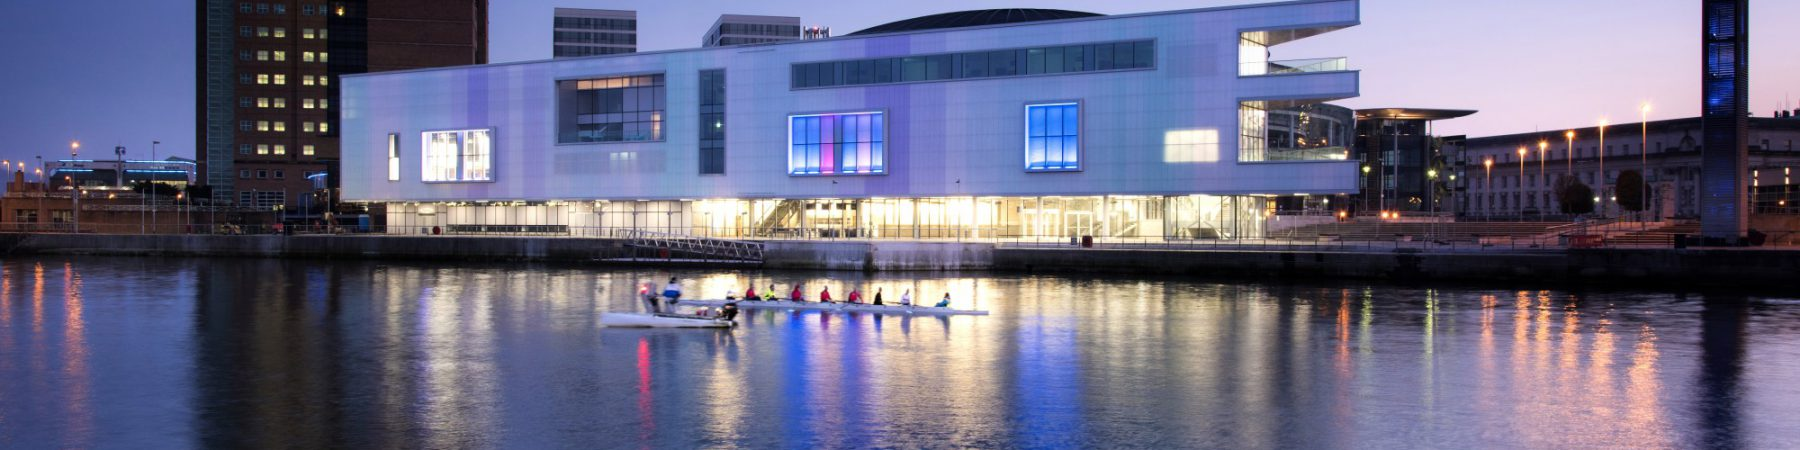 Belfast-Waterfront-rowers